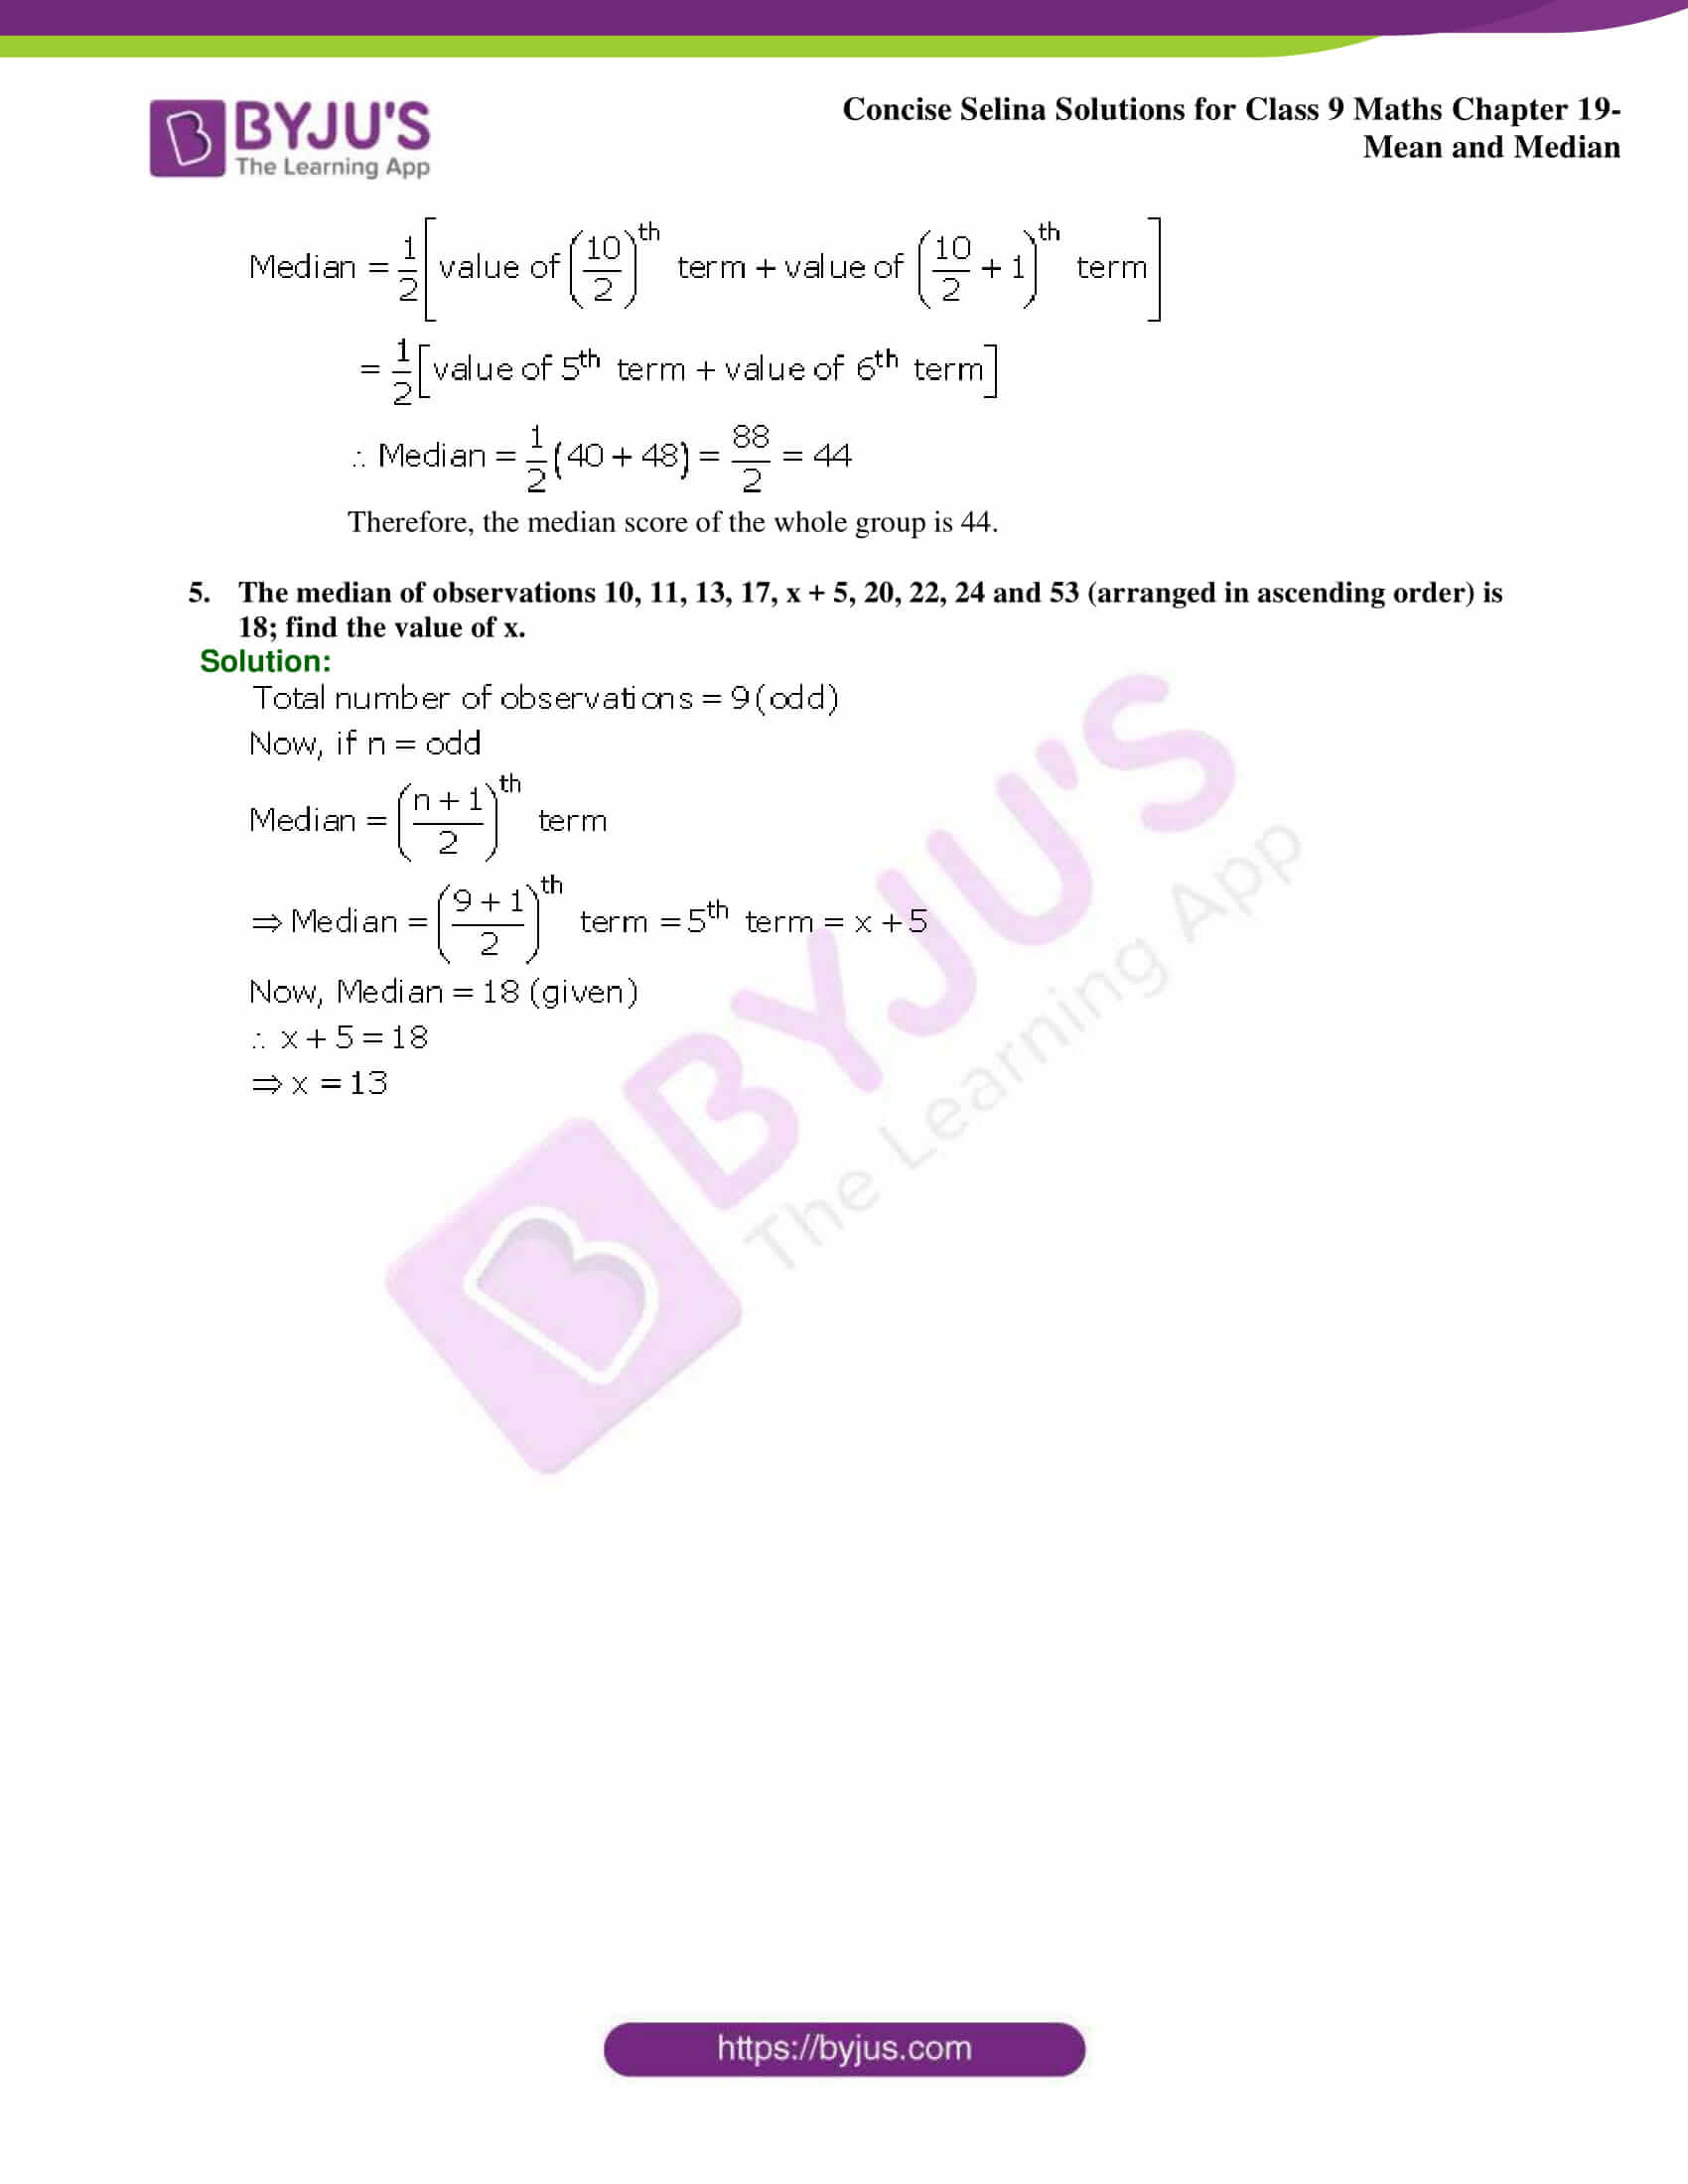 Concise Selina Solutions Class 9 Maths Chapter 19 Mean and Median part 12